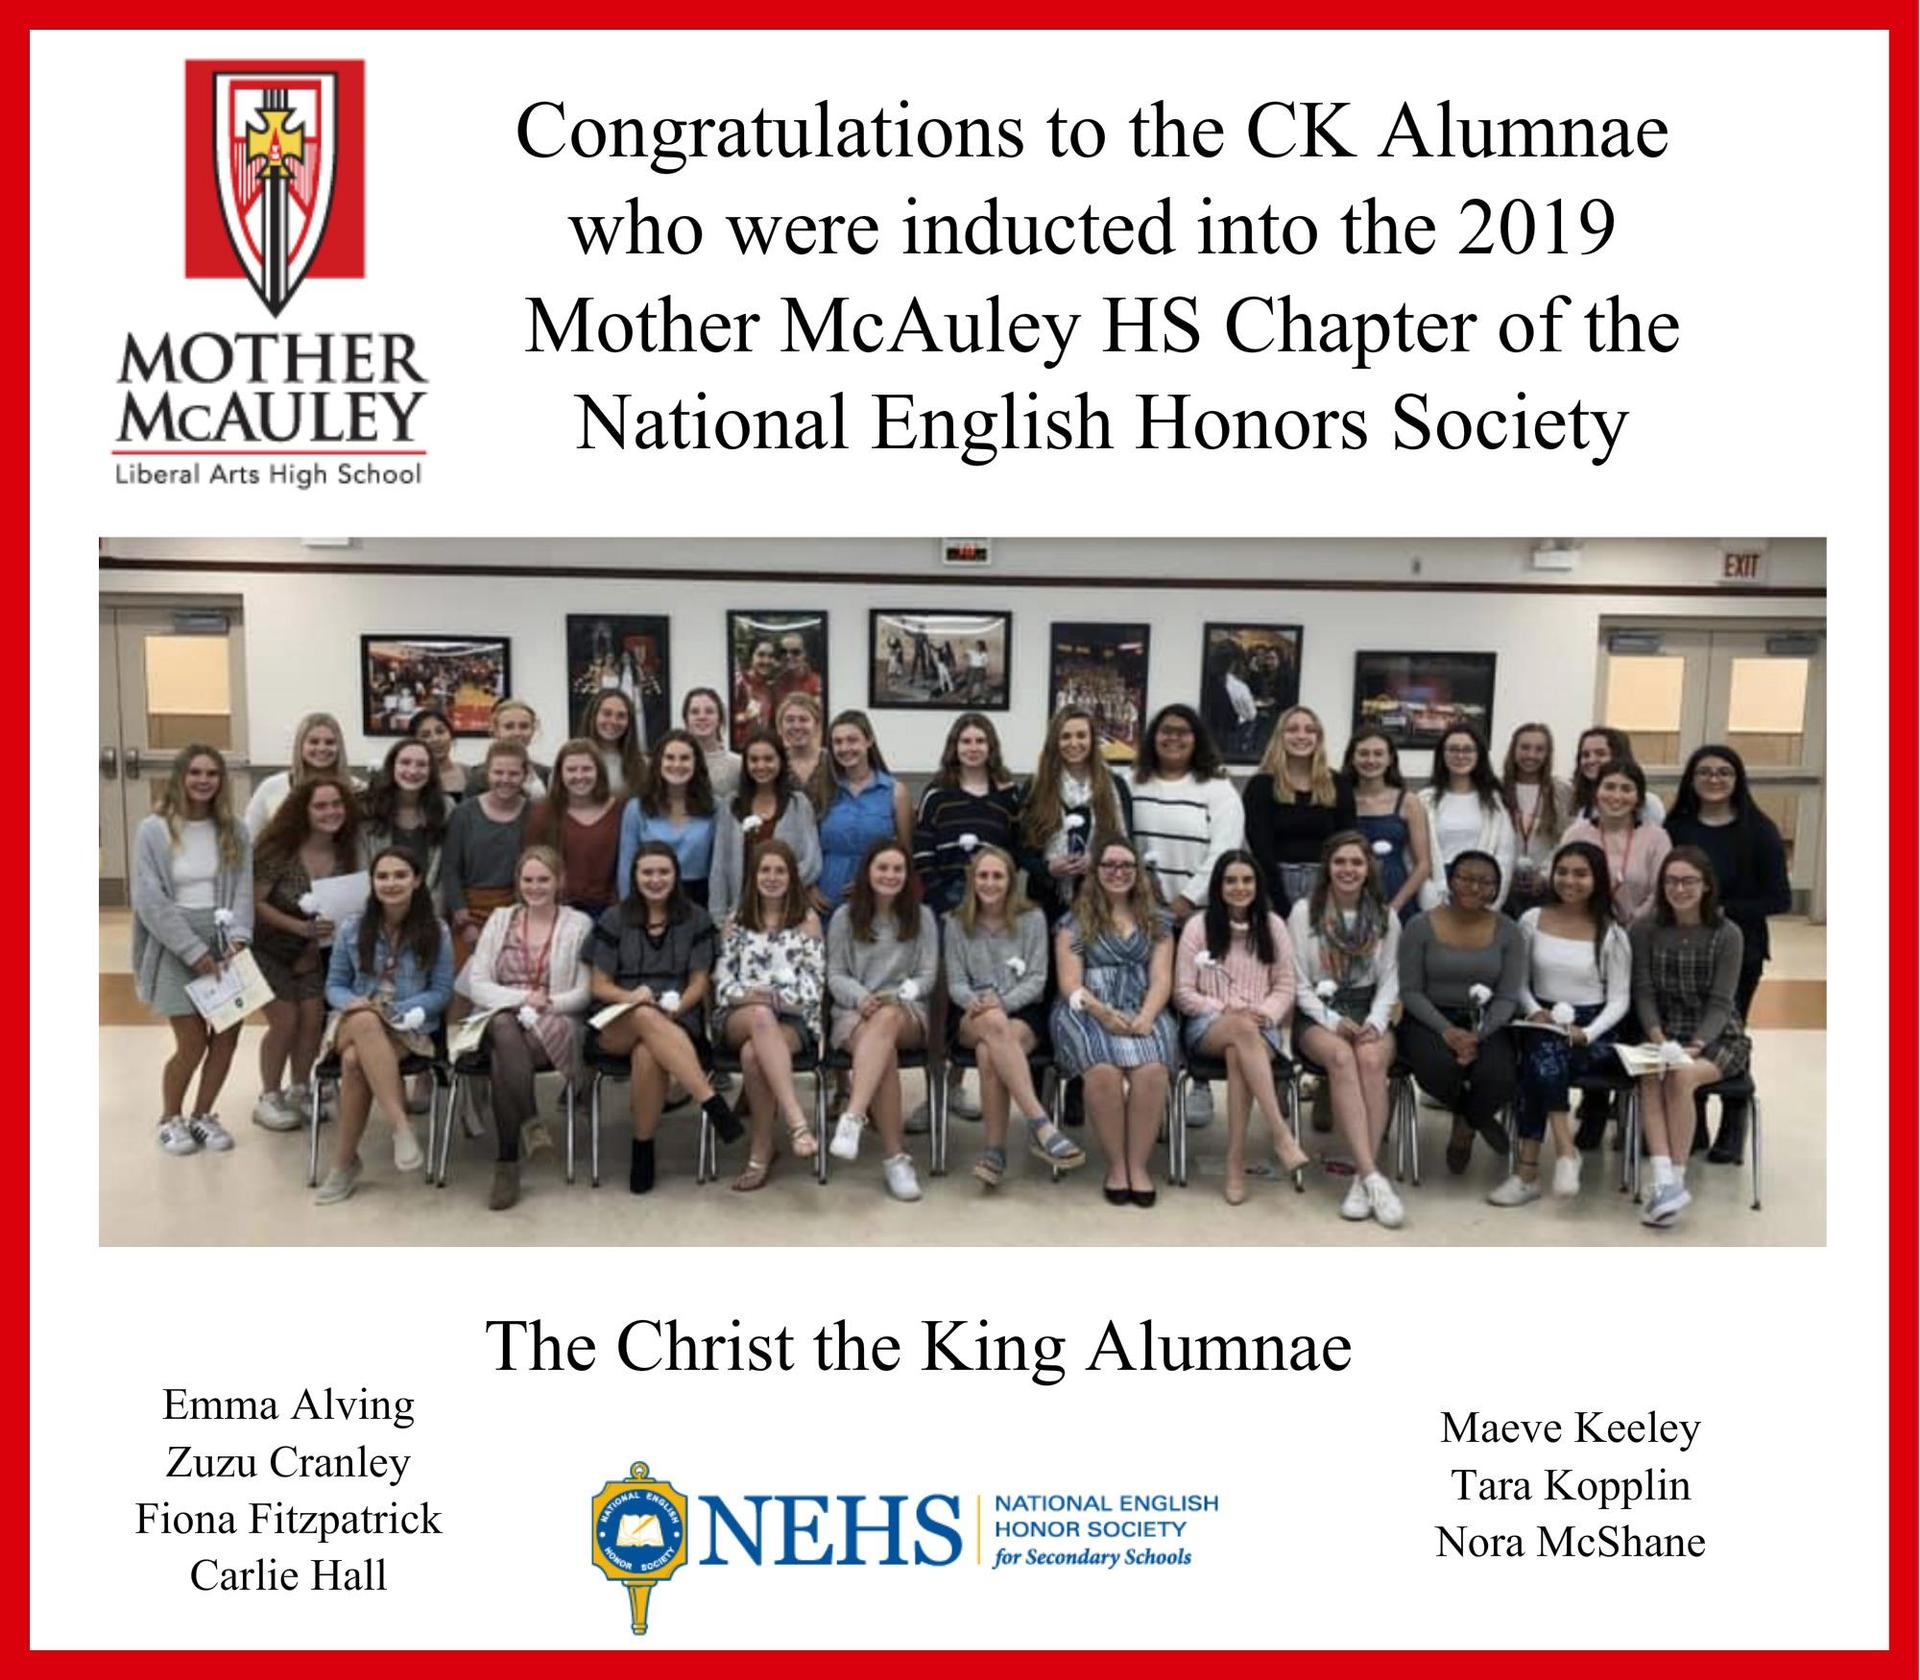 National English Honor Society Inductees Fall 2019 from Mother McAuley High School